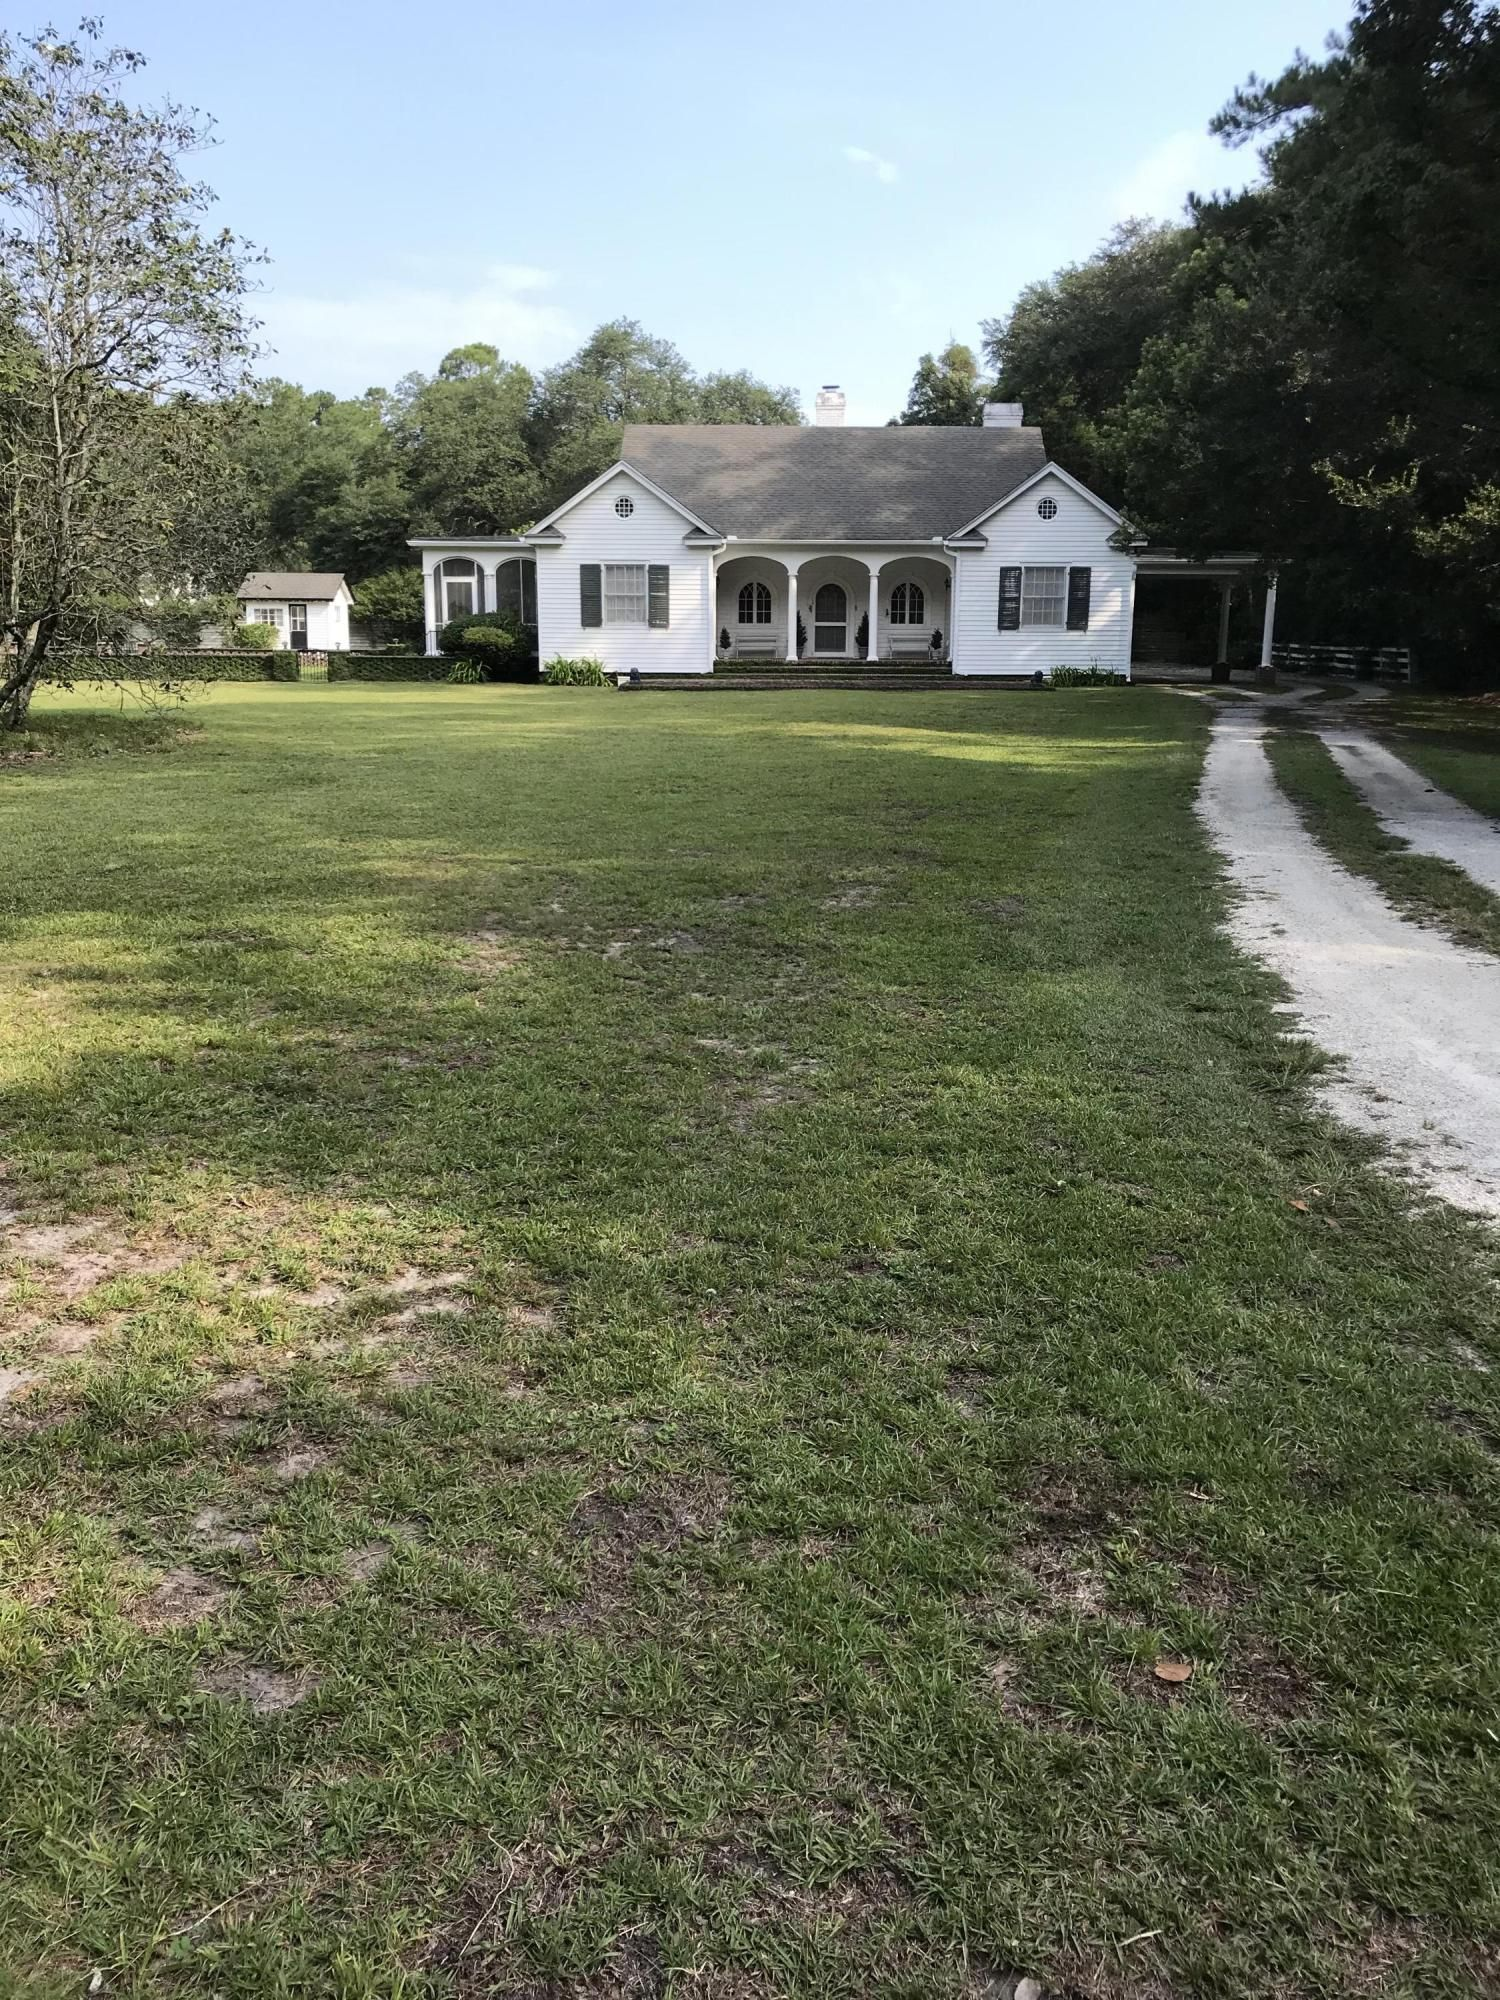 Lovely historic home in summerville built around 1930 with